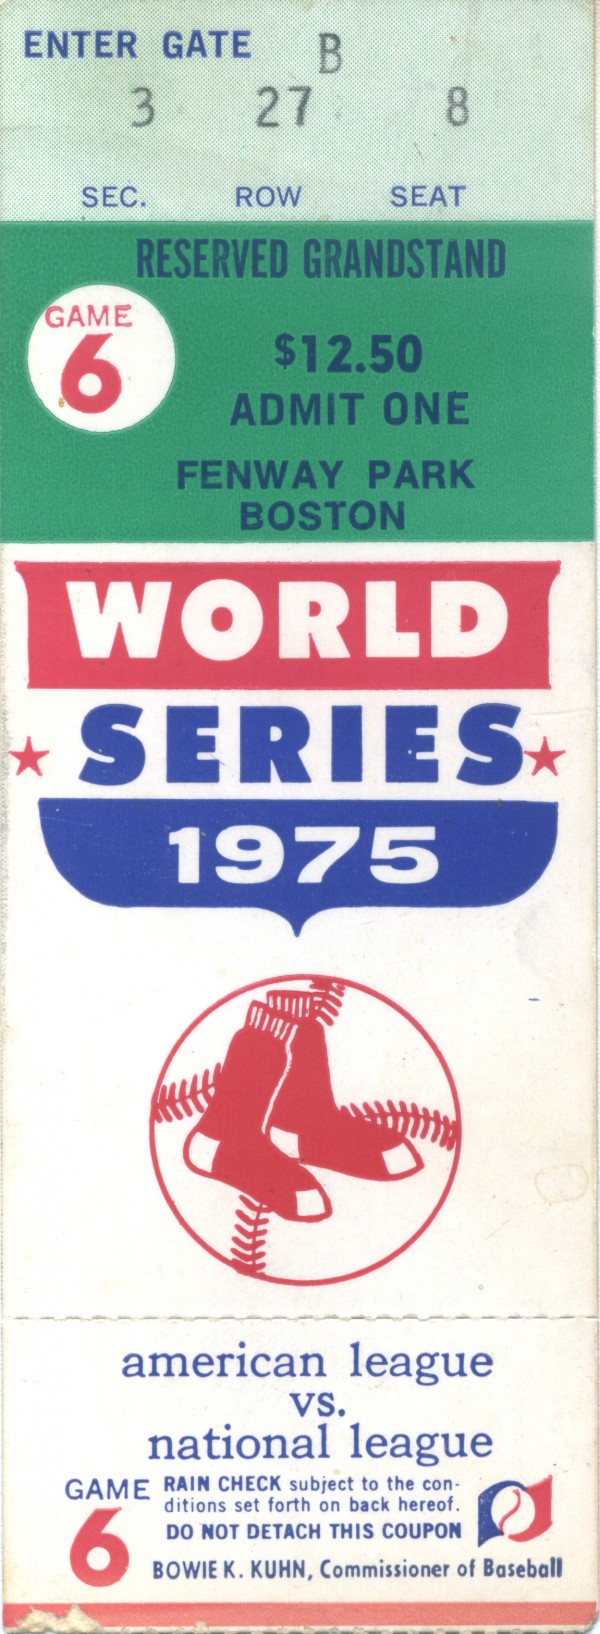 Eddie Adelman's ticket to game 6 of the World Series in 1975.